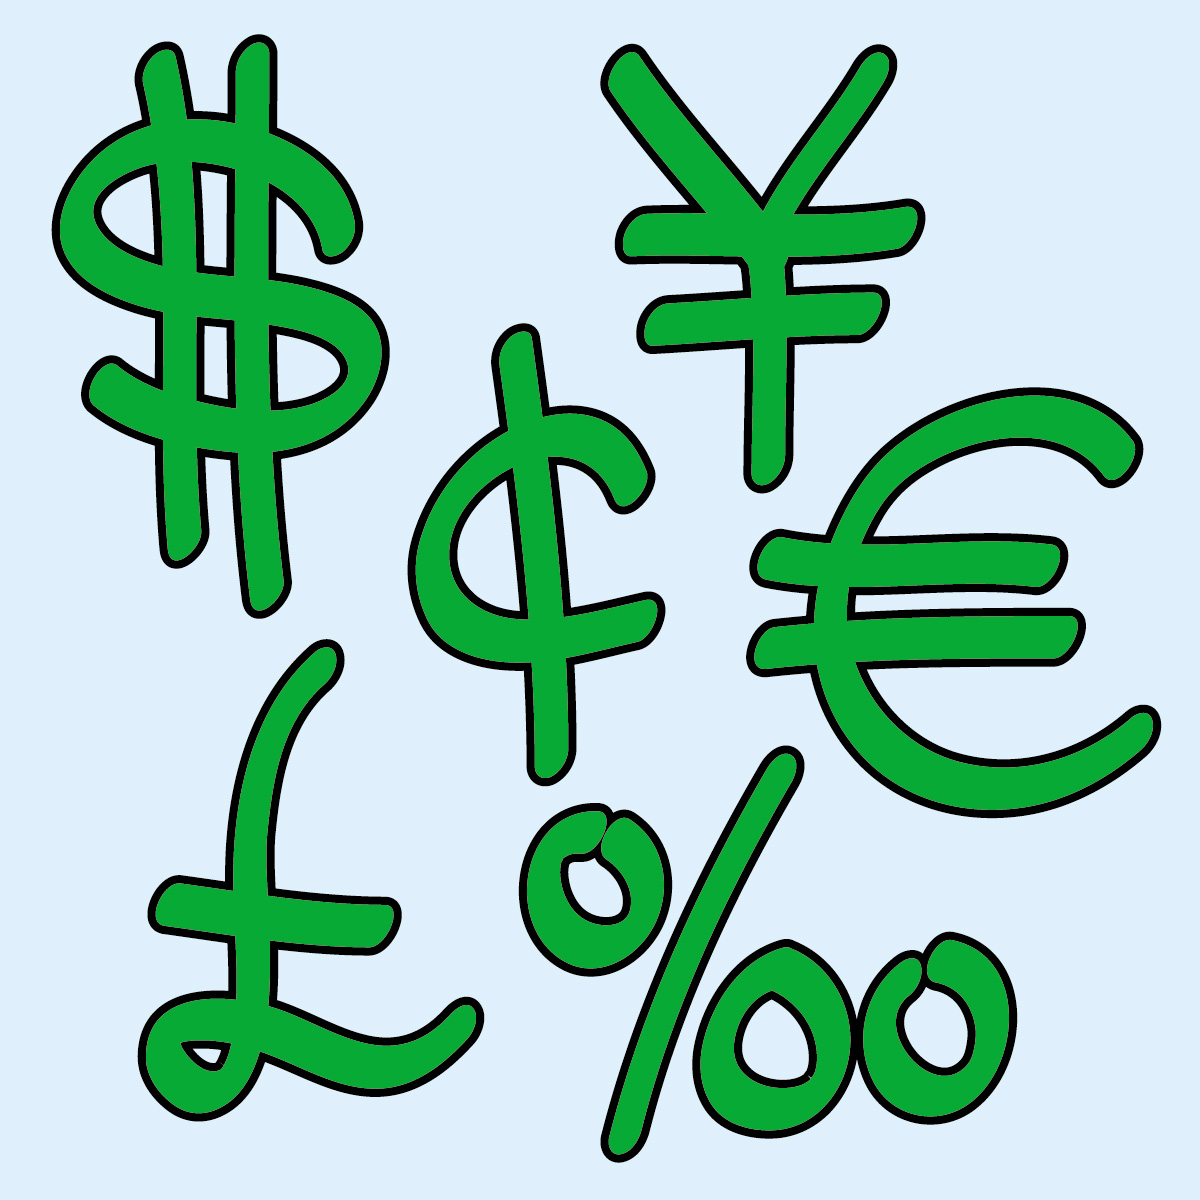 What is the currency of clipart